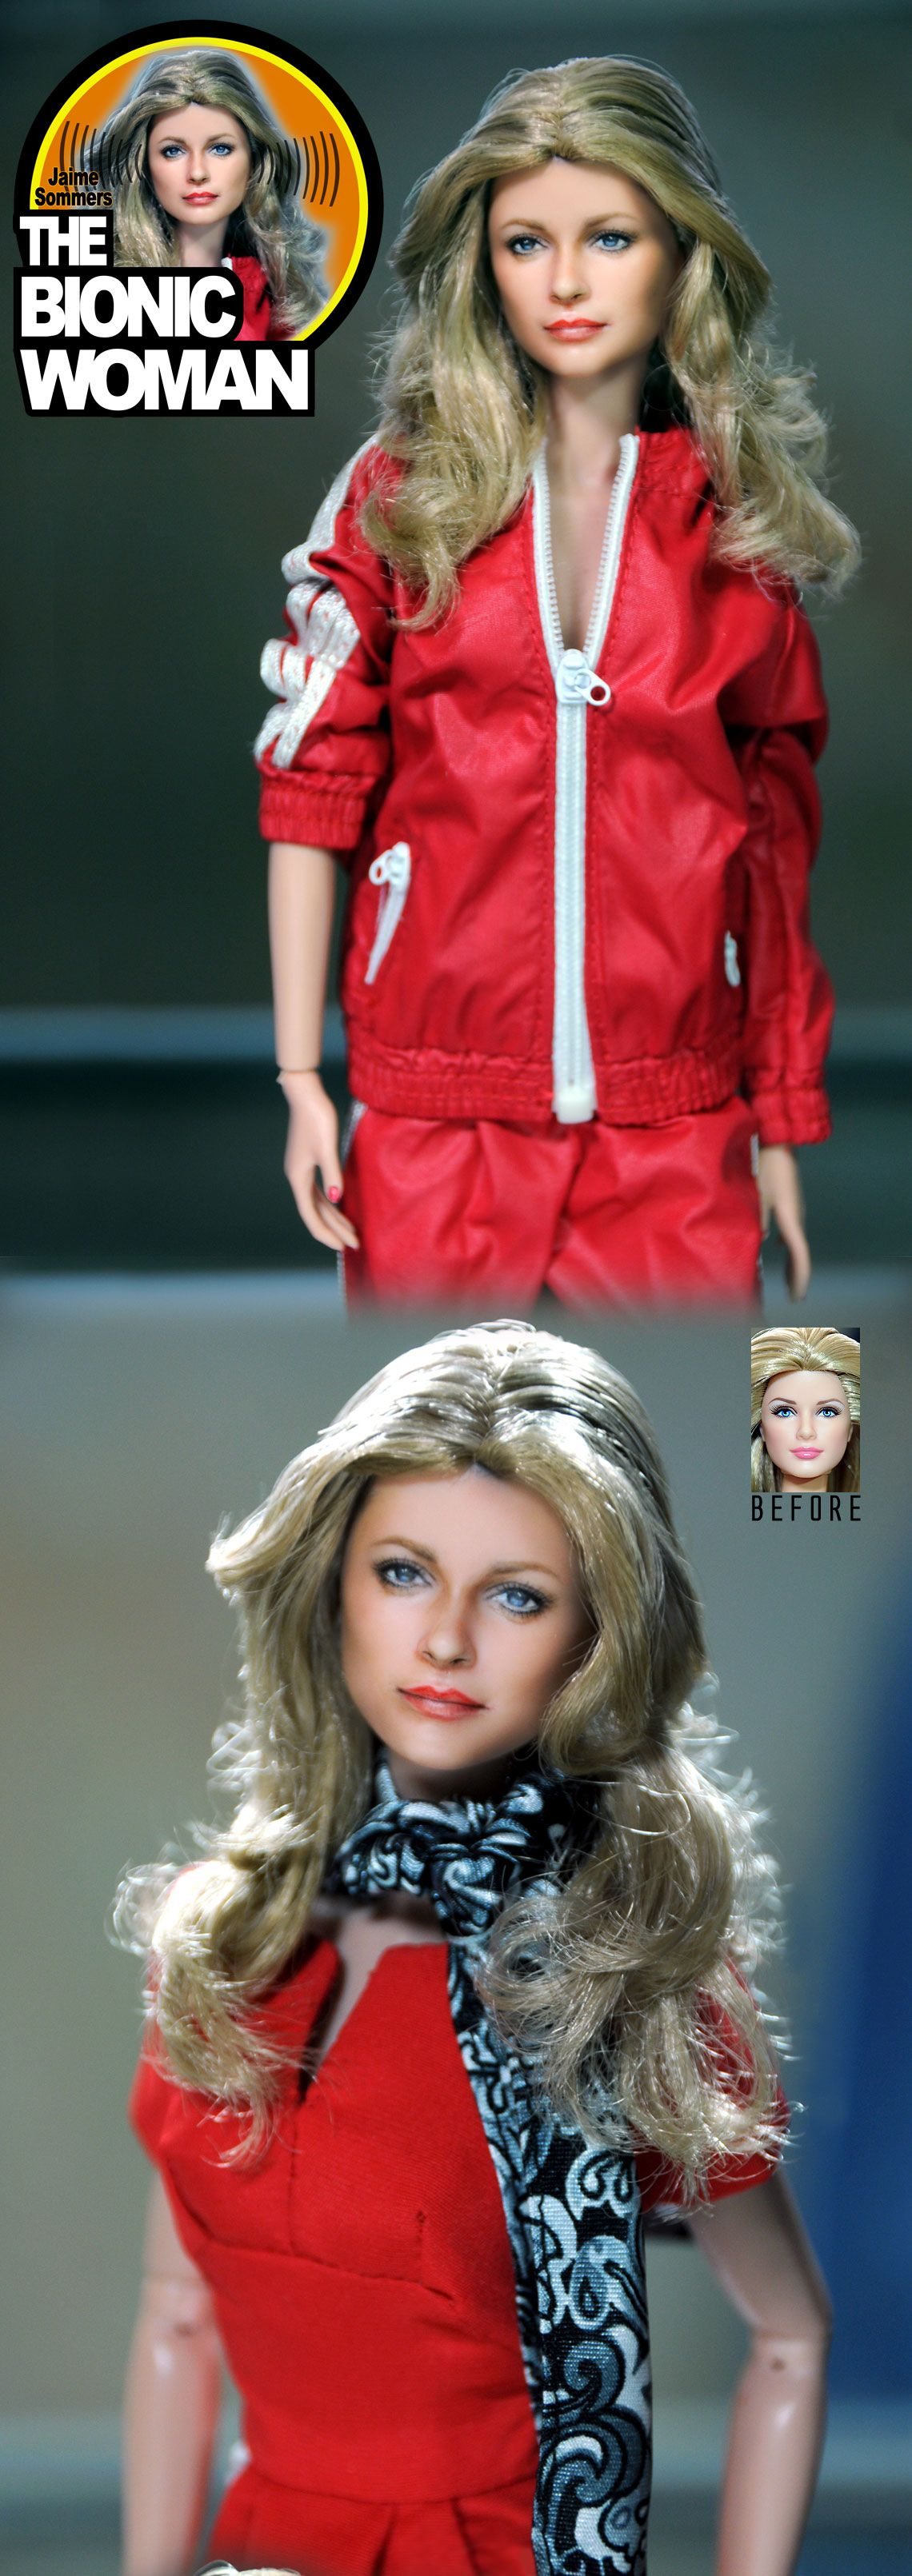 Lindsay Wagner as Jaime Sommers THE BIONIC WOMAN as repainted, restyled and photographed by artist Noel Cruz of ncruz.com for myfarrah.com.